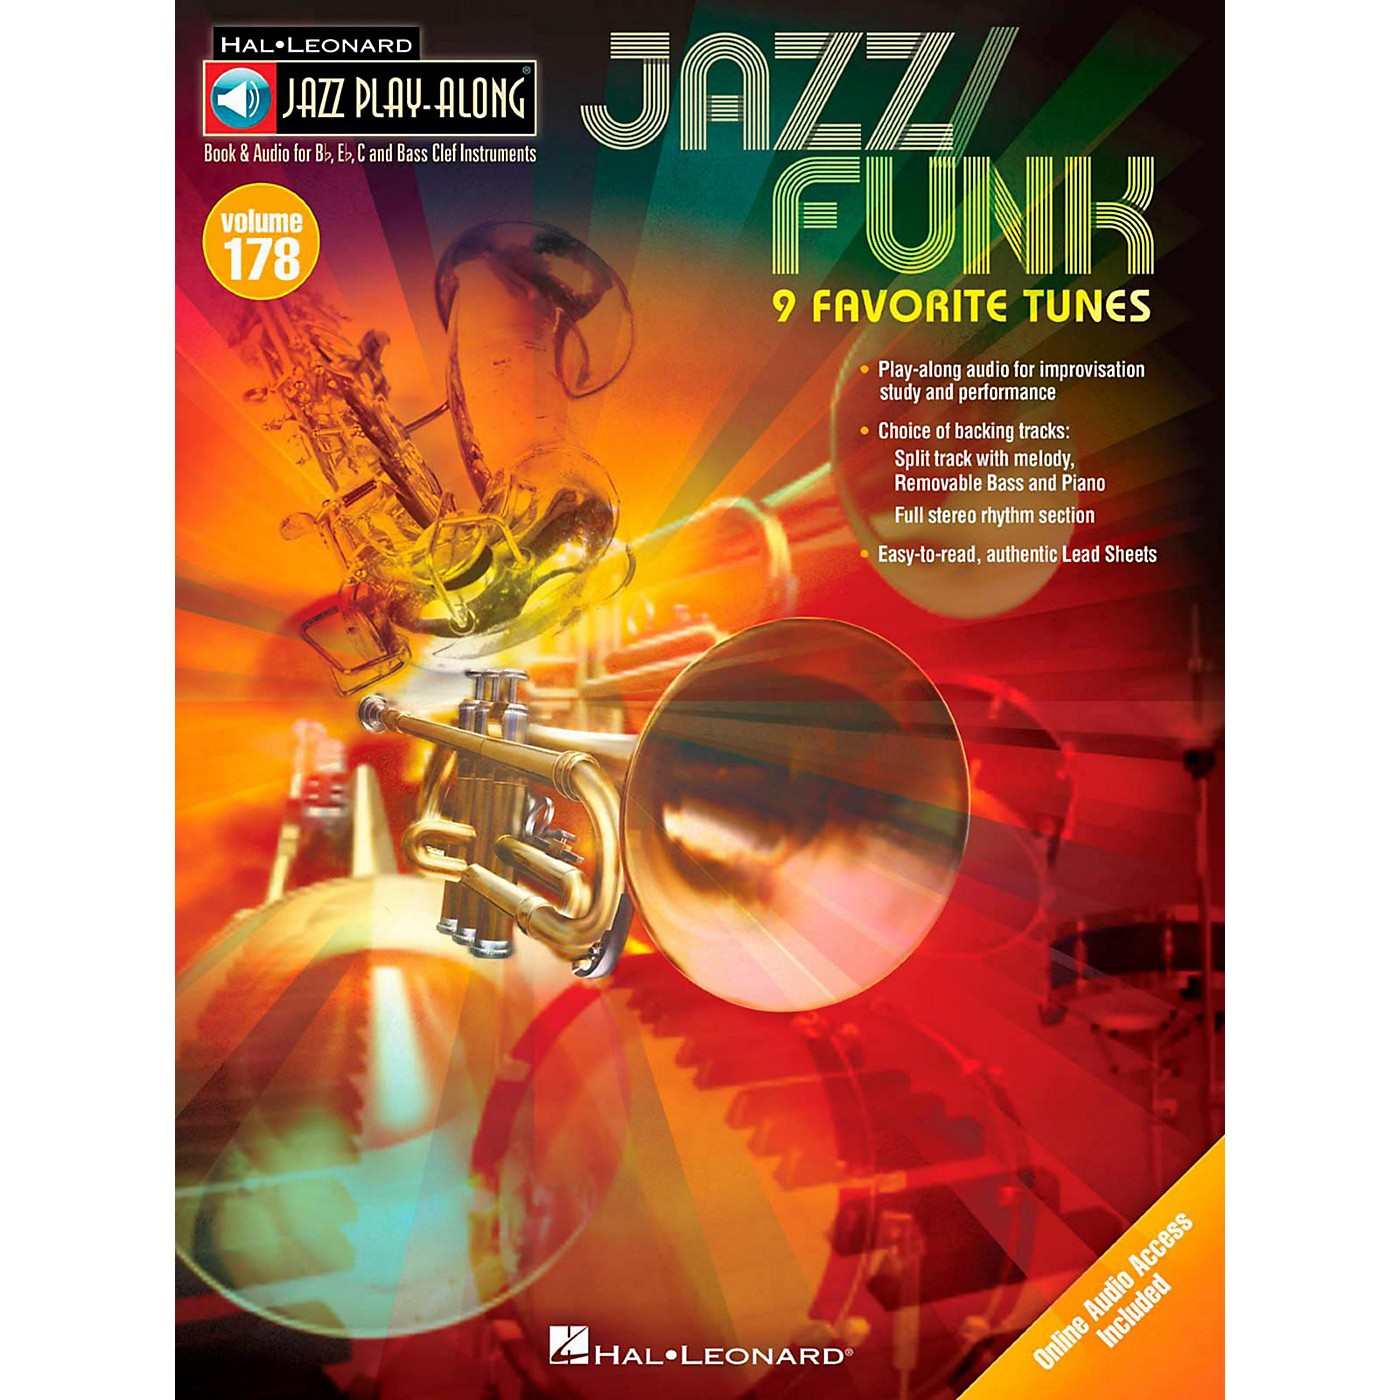 Hal Leonard Jazz/Funk - Jazz Play-Along Volume 178 Book/Online Audio thumbnail